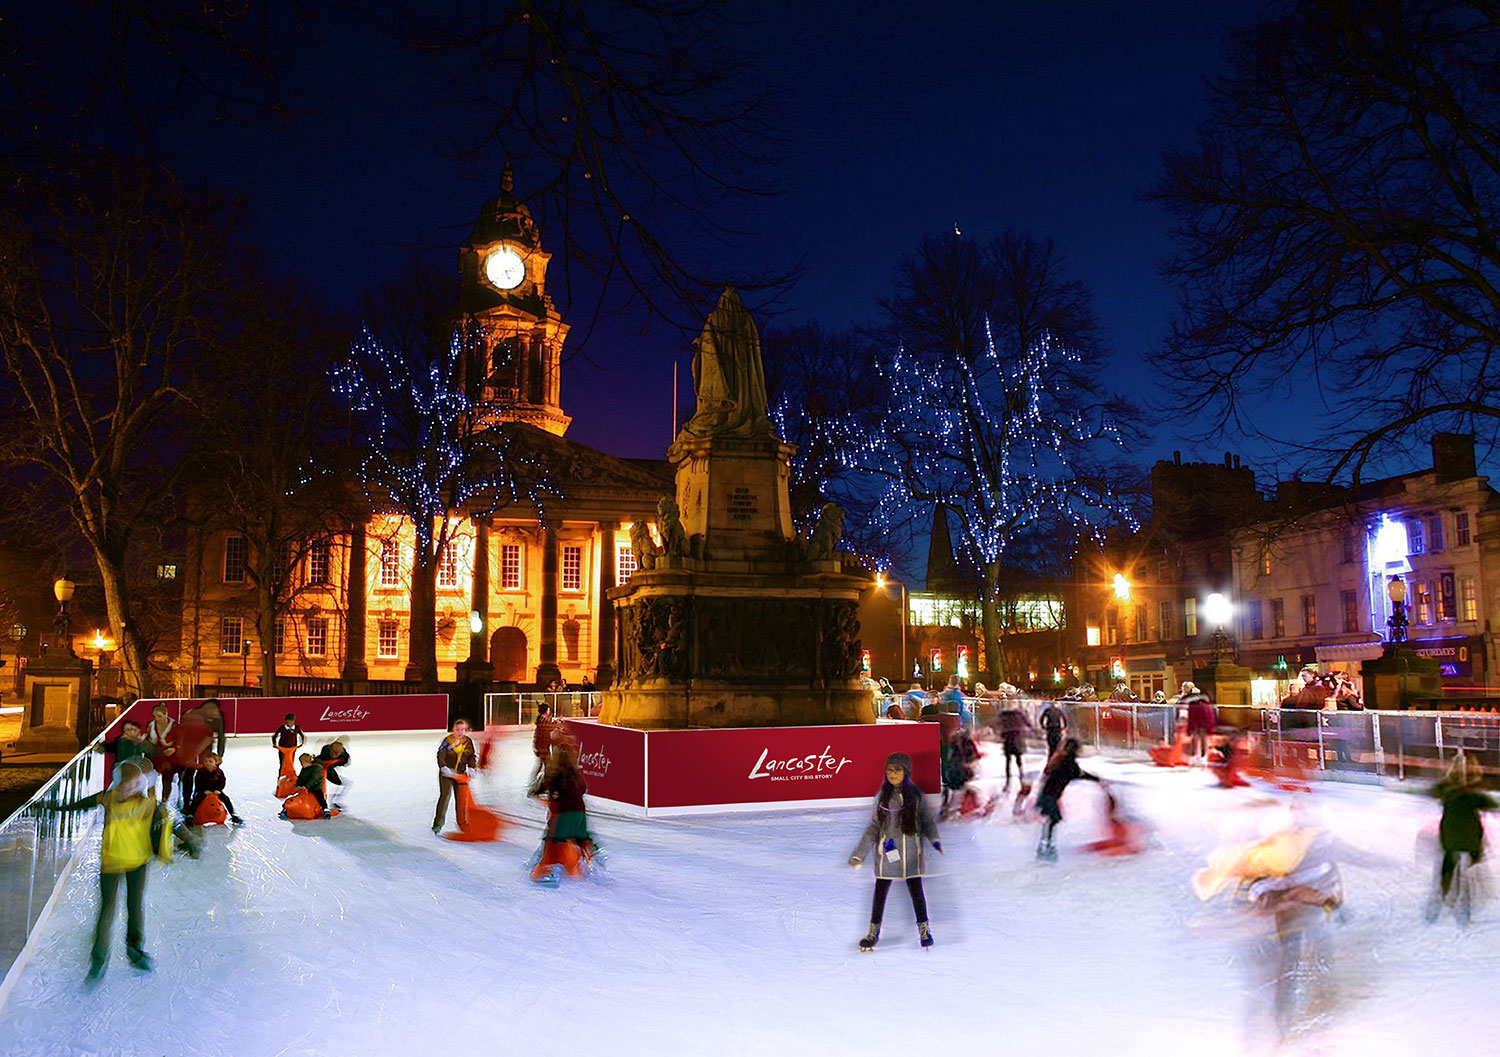 Ice rink in Lancaster